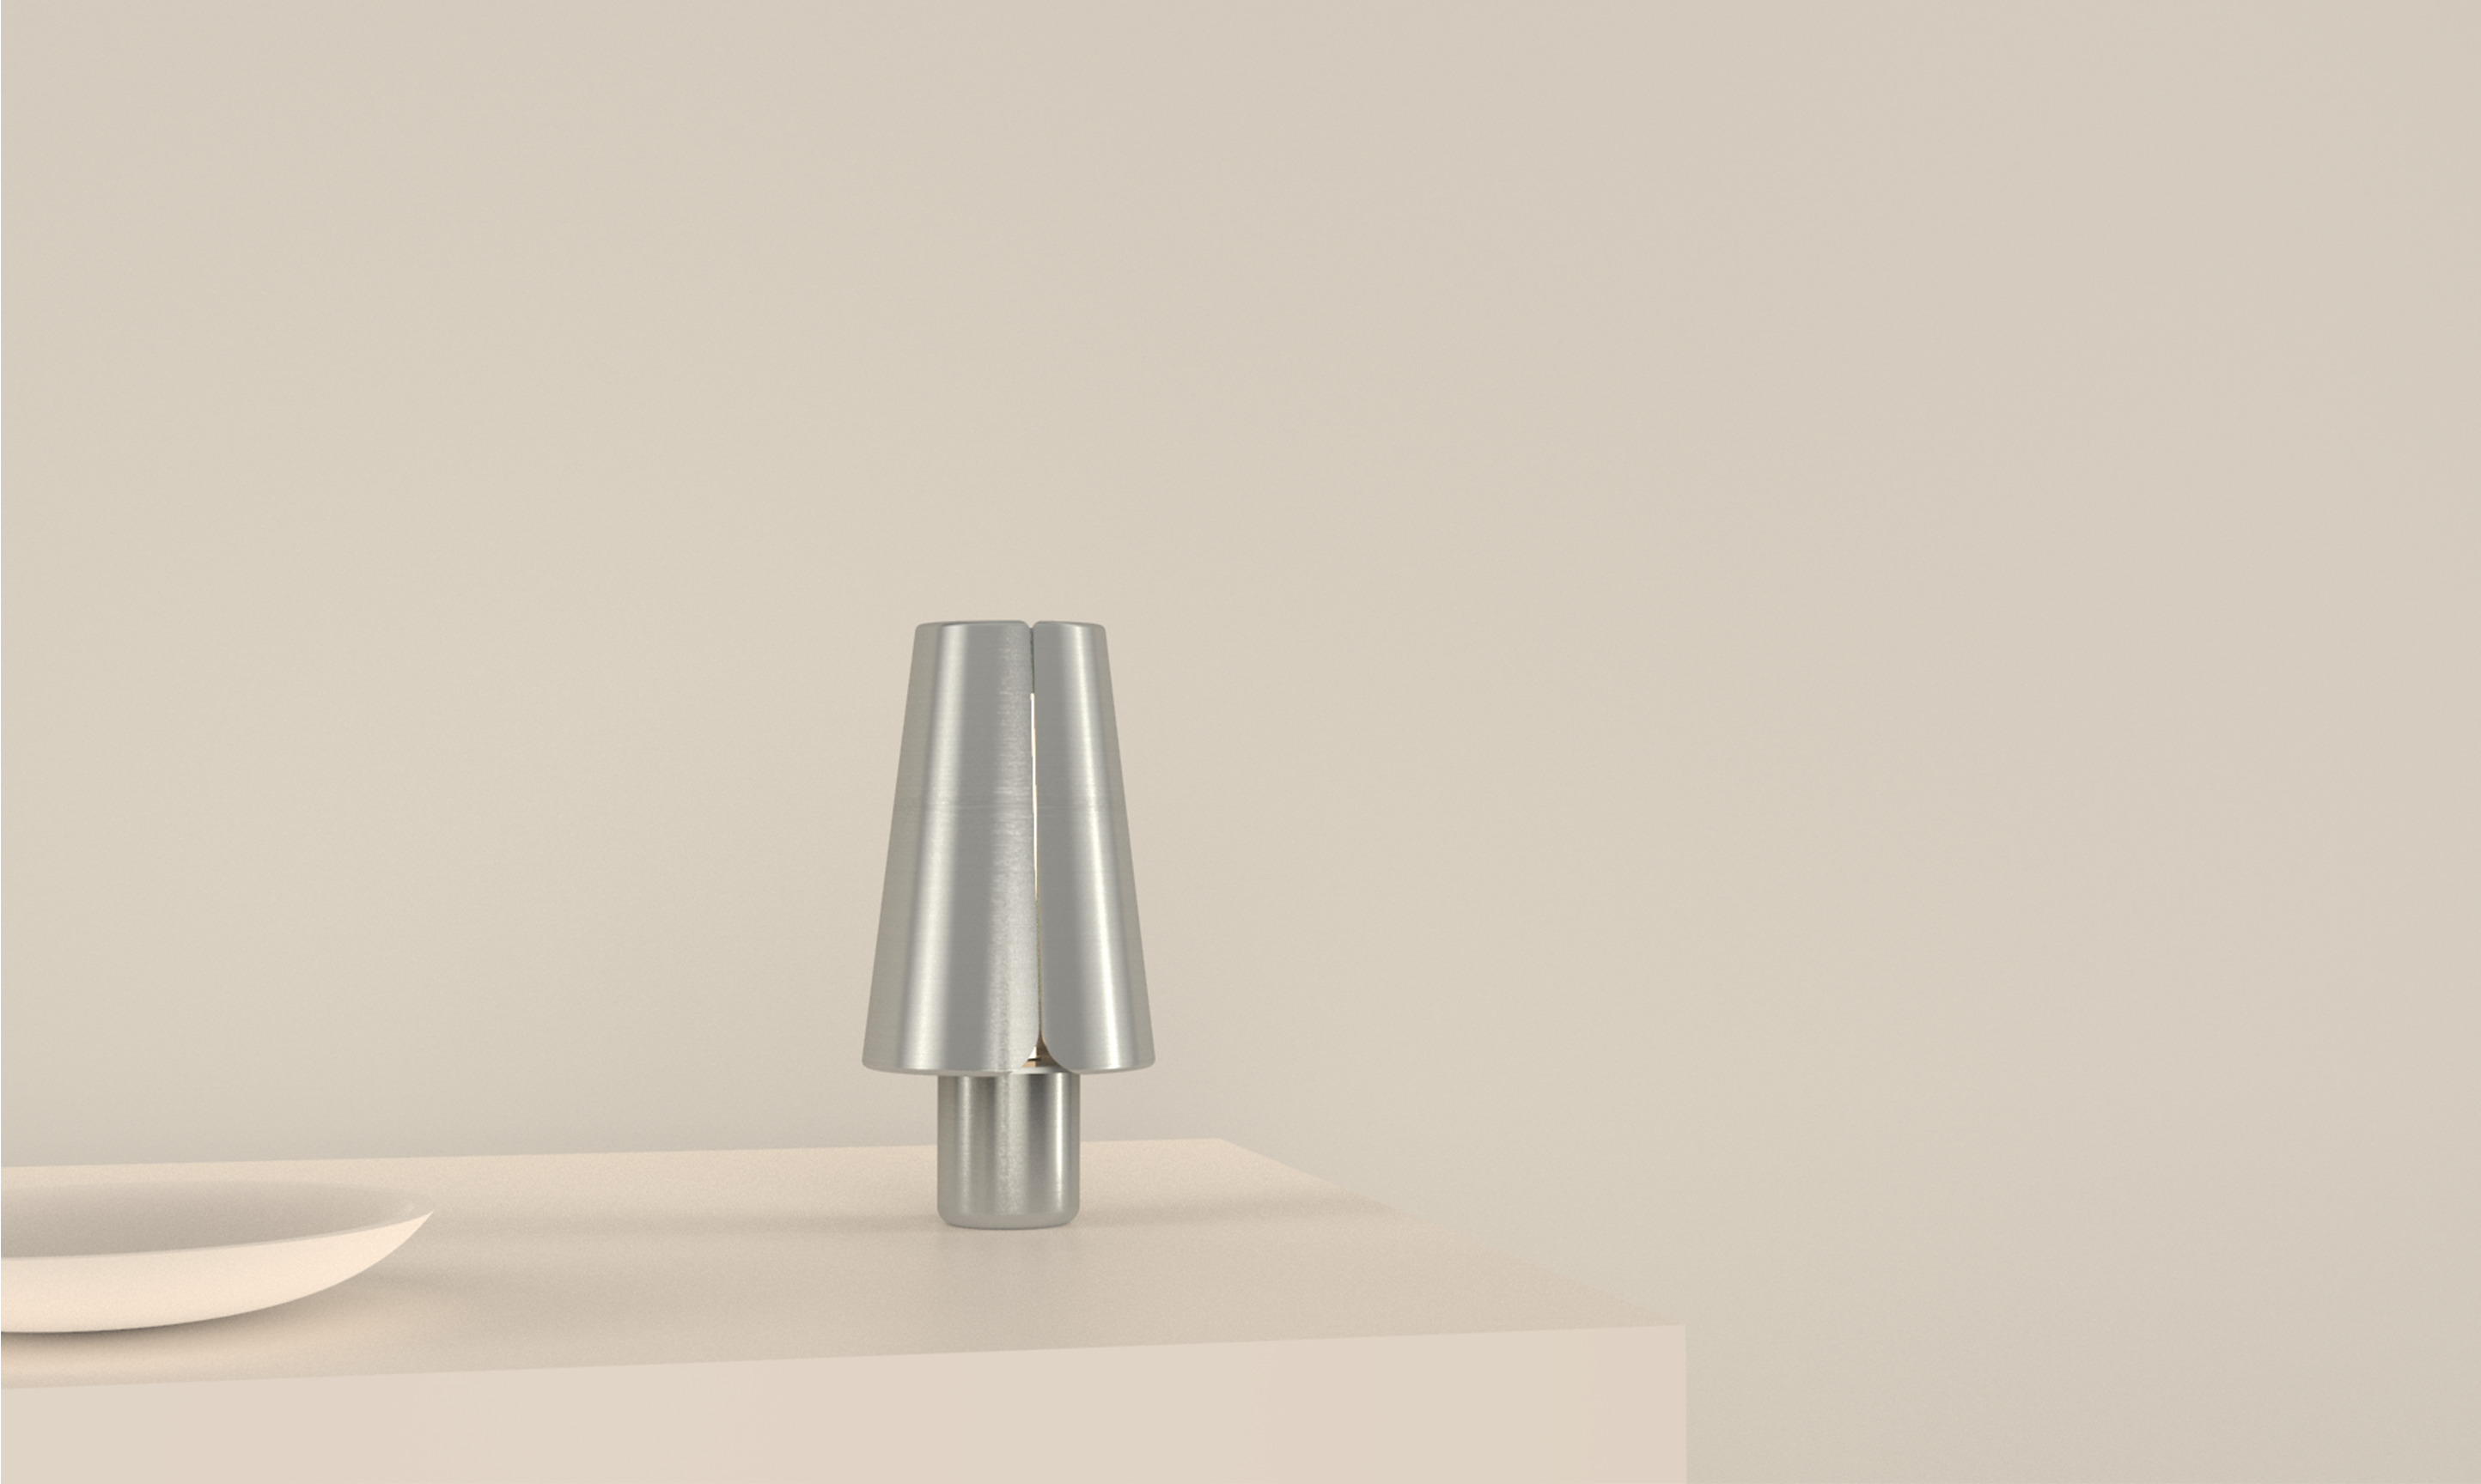 lamp-on-table-beige-angledCROP